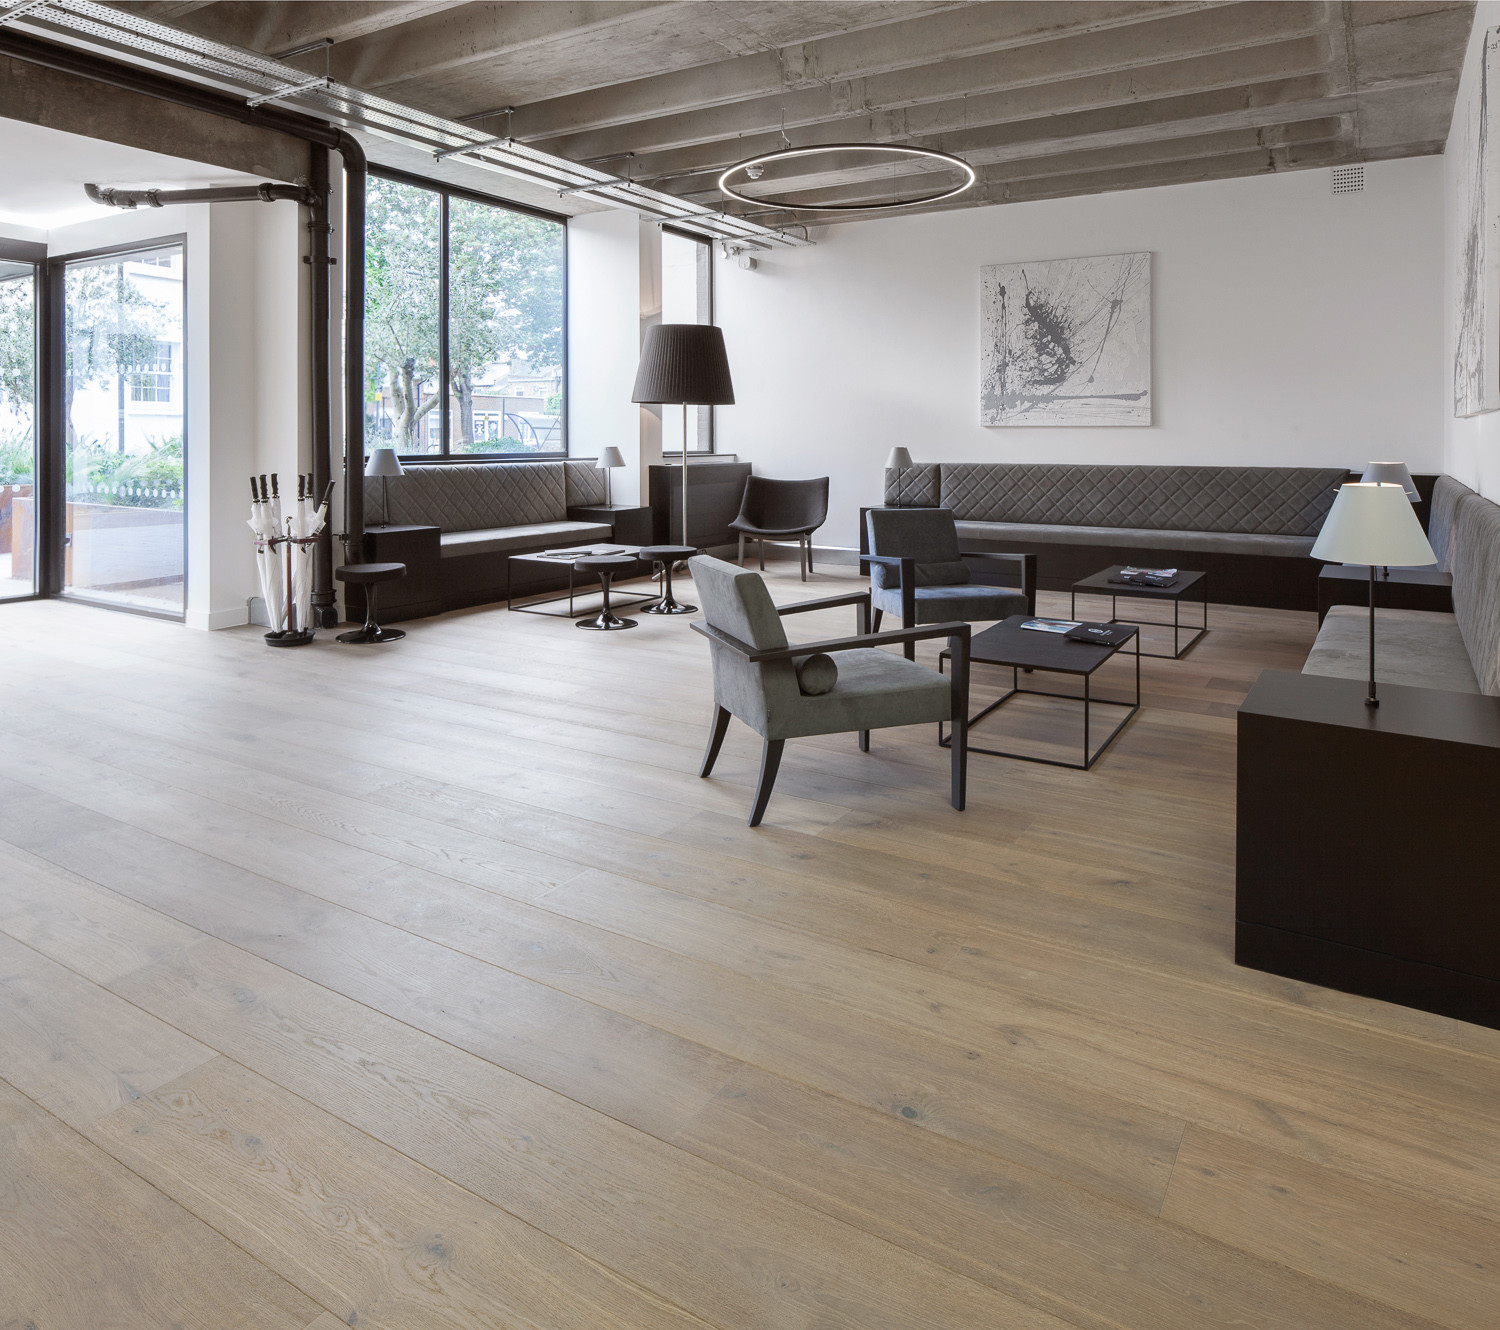 bruce maple hardwood flooring reviews of blog archives the new reclaimed flooring companythe new intended for the report indicated that 82 of workers who were employed in places with eight or more wood surfaces had higher personal productivity mood concentration